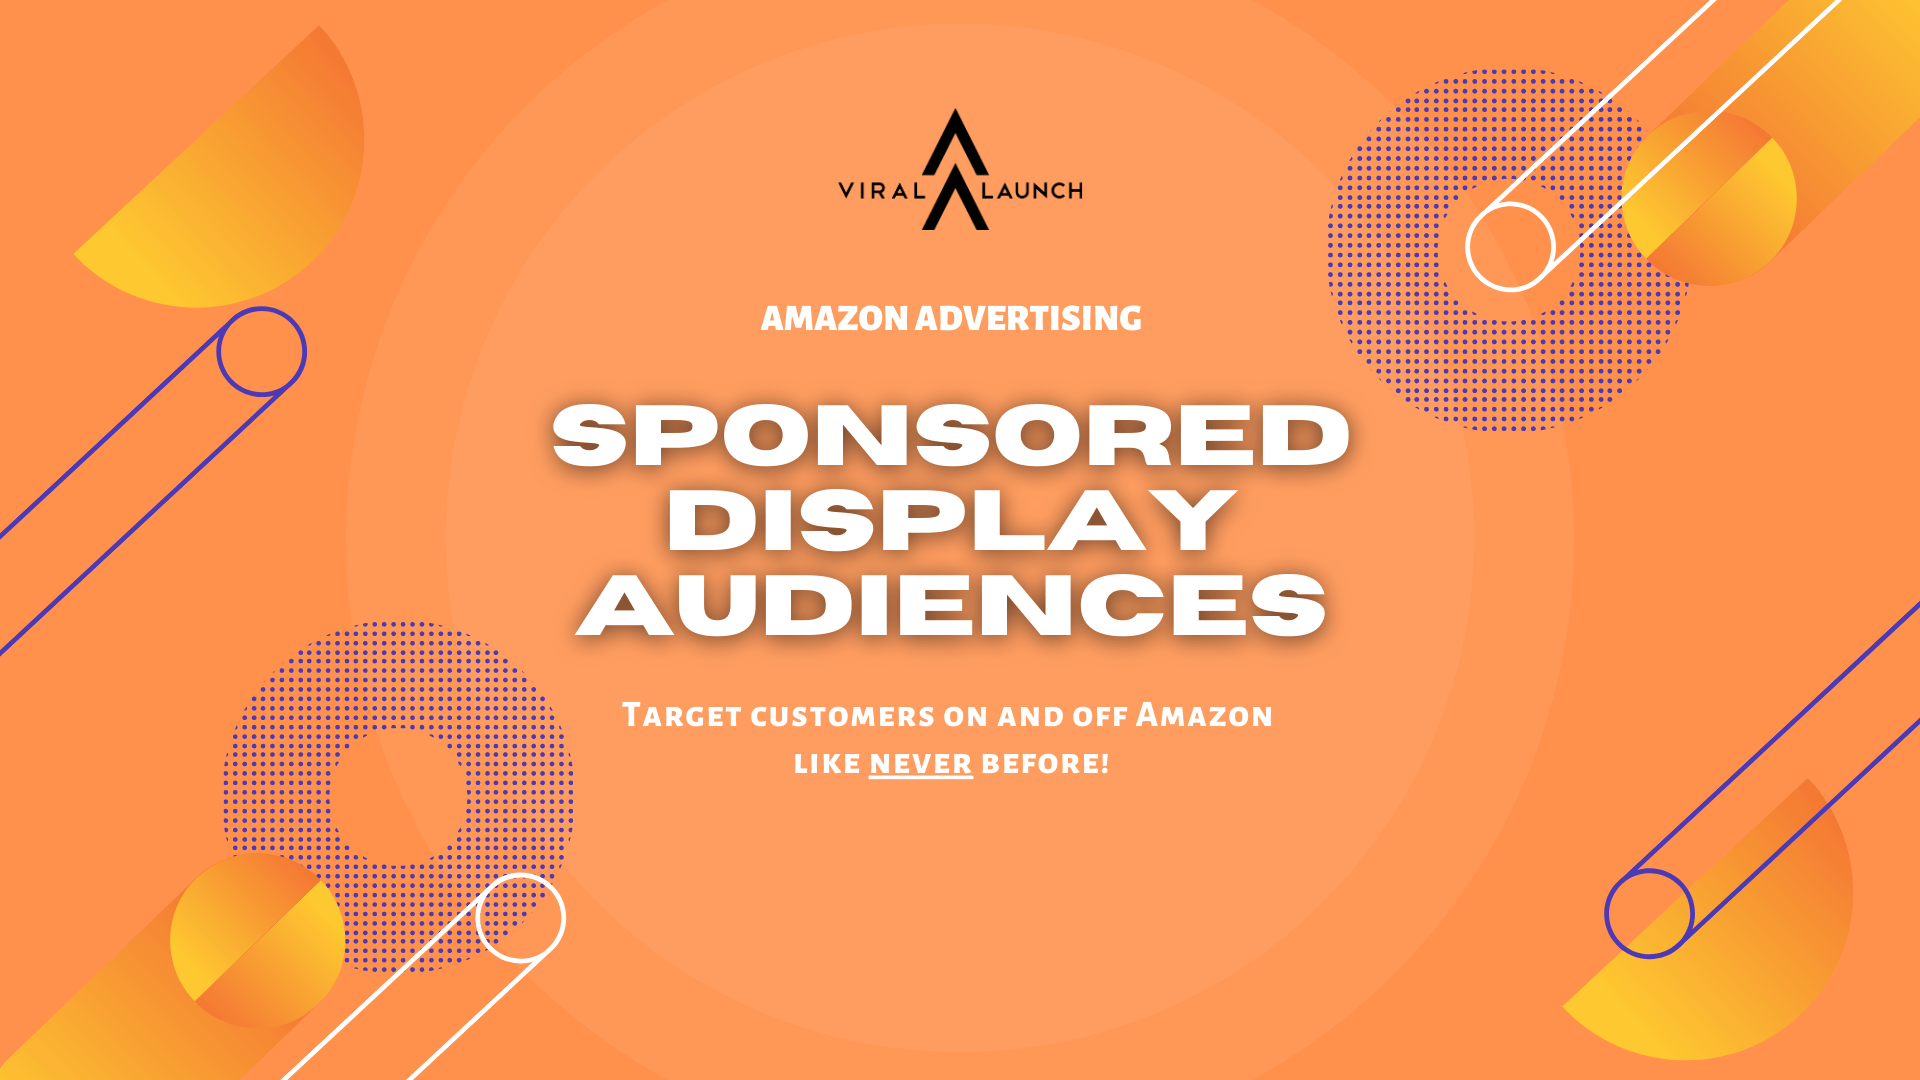 amazon advertising | sponsored display audiences | viral launch